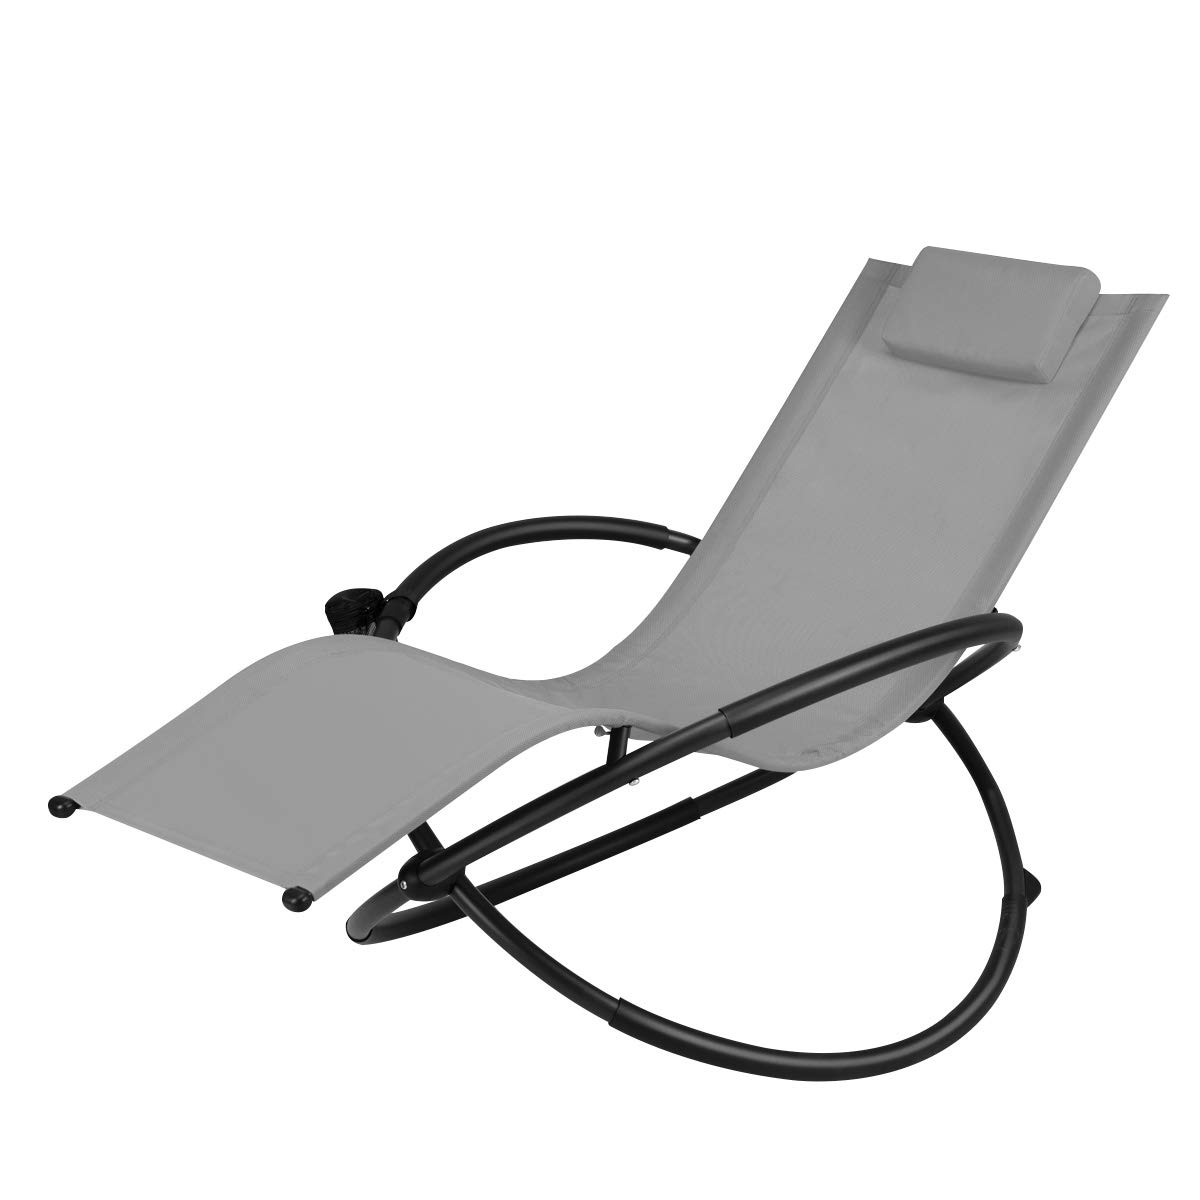 Goplus Outdoor Orbital Lounger Zero Gravity Chaise Foldable Rocking Chair w Removable Pillow Cup Holder Portable Chair for Camping, Fishing, Beach, Patio, 400-lb Capacity Gray